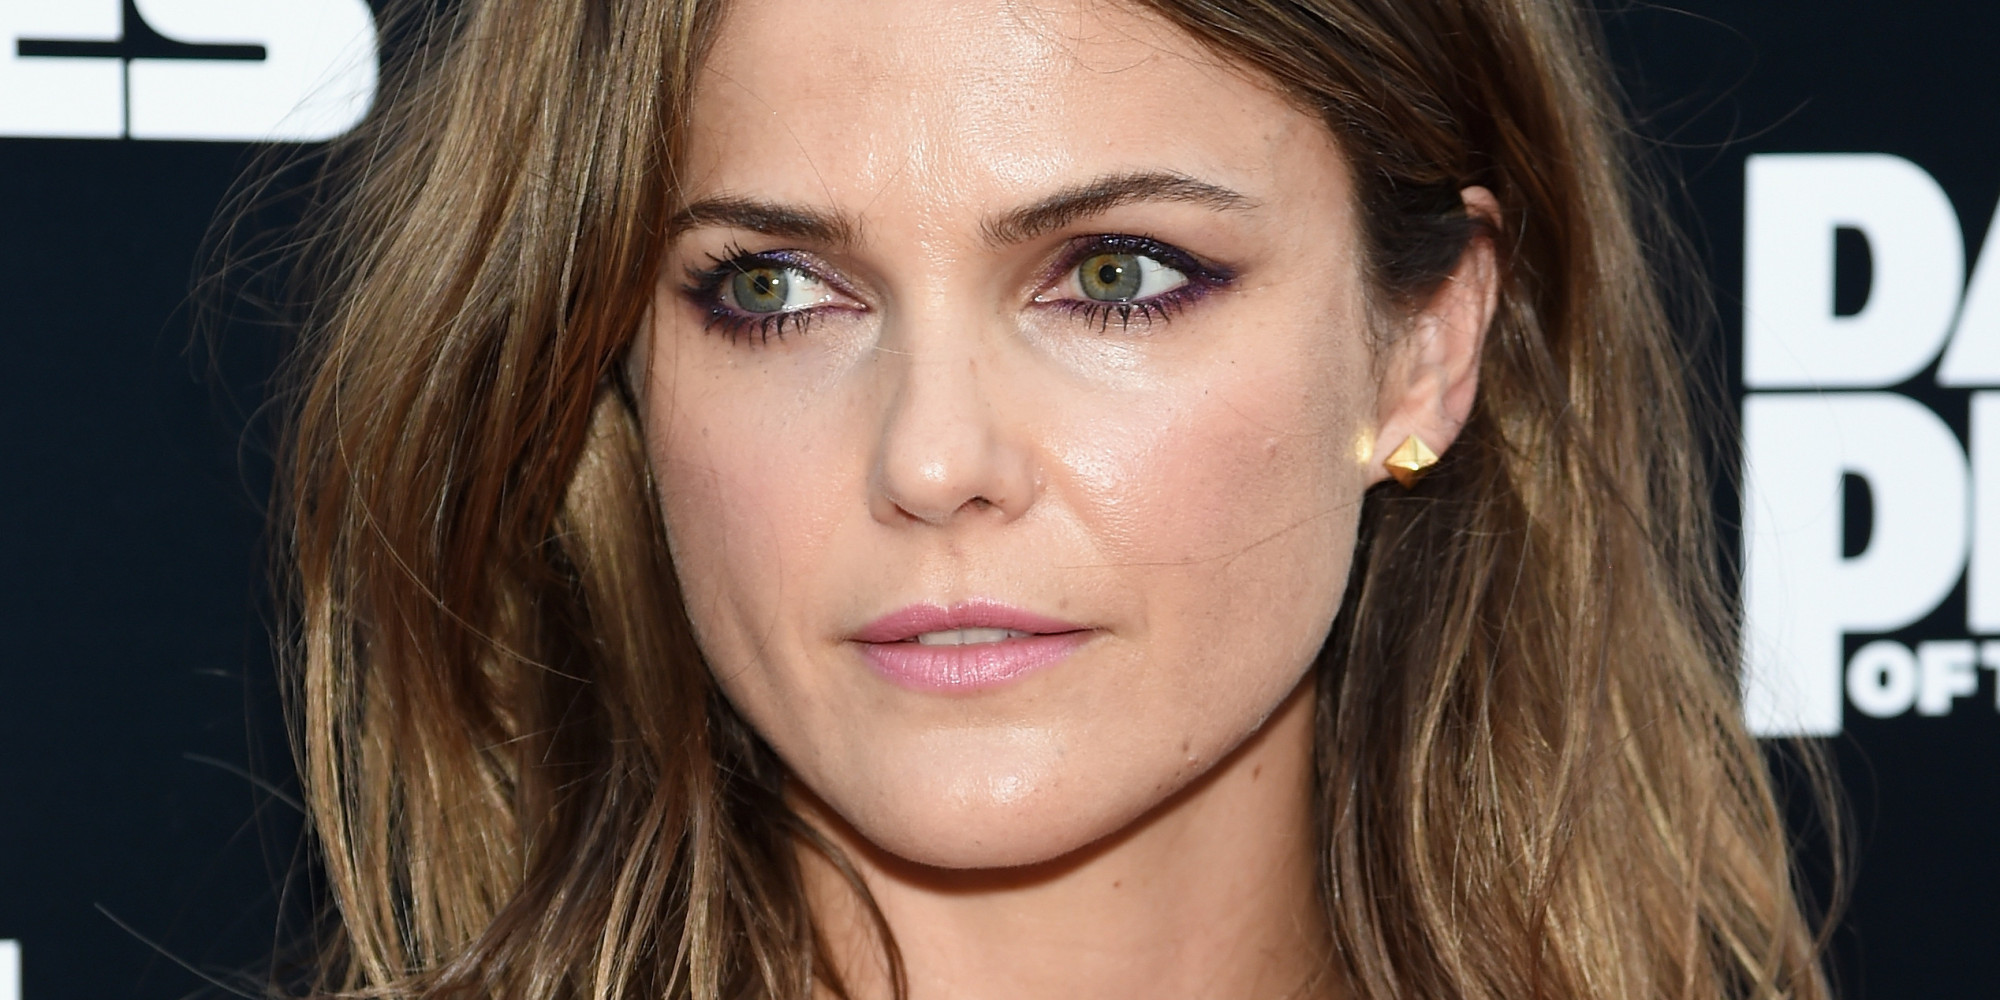 keri russell hits the red carpet in a see-through top | huffpost